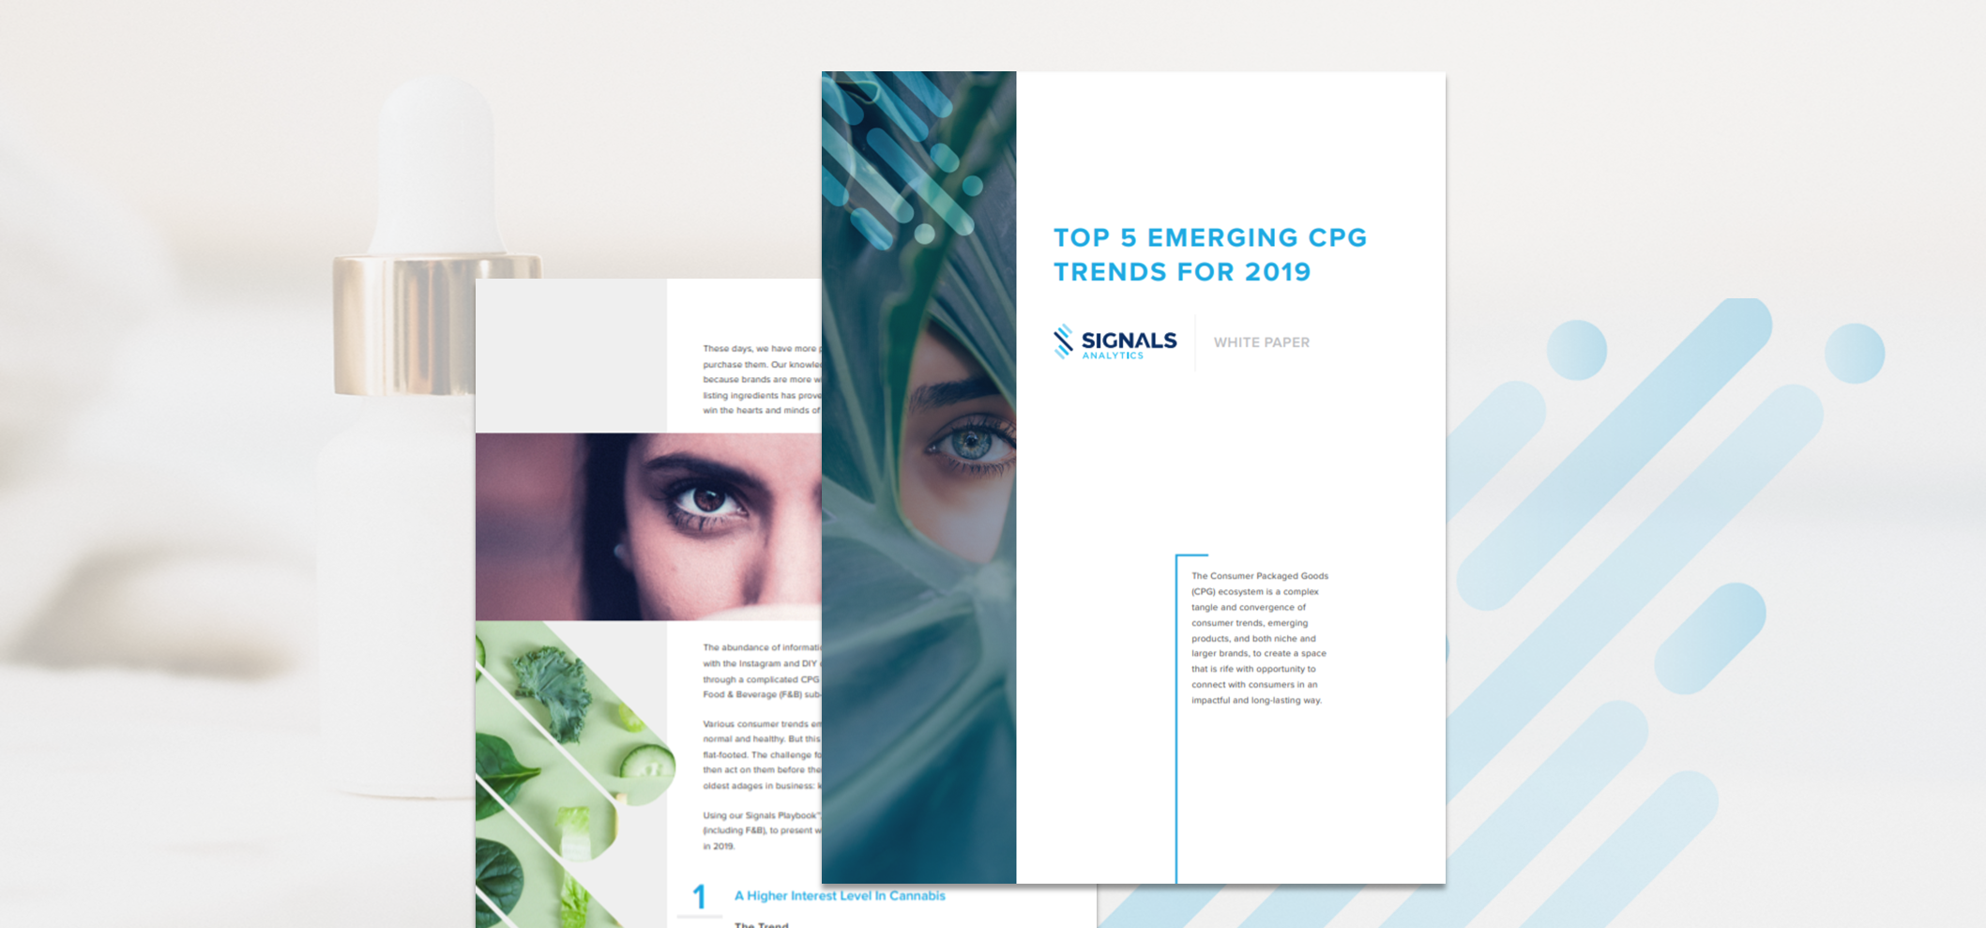 Top 5 Emerging CPG Trends For 2019